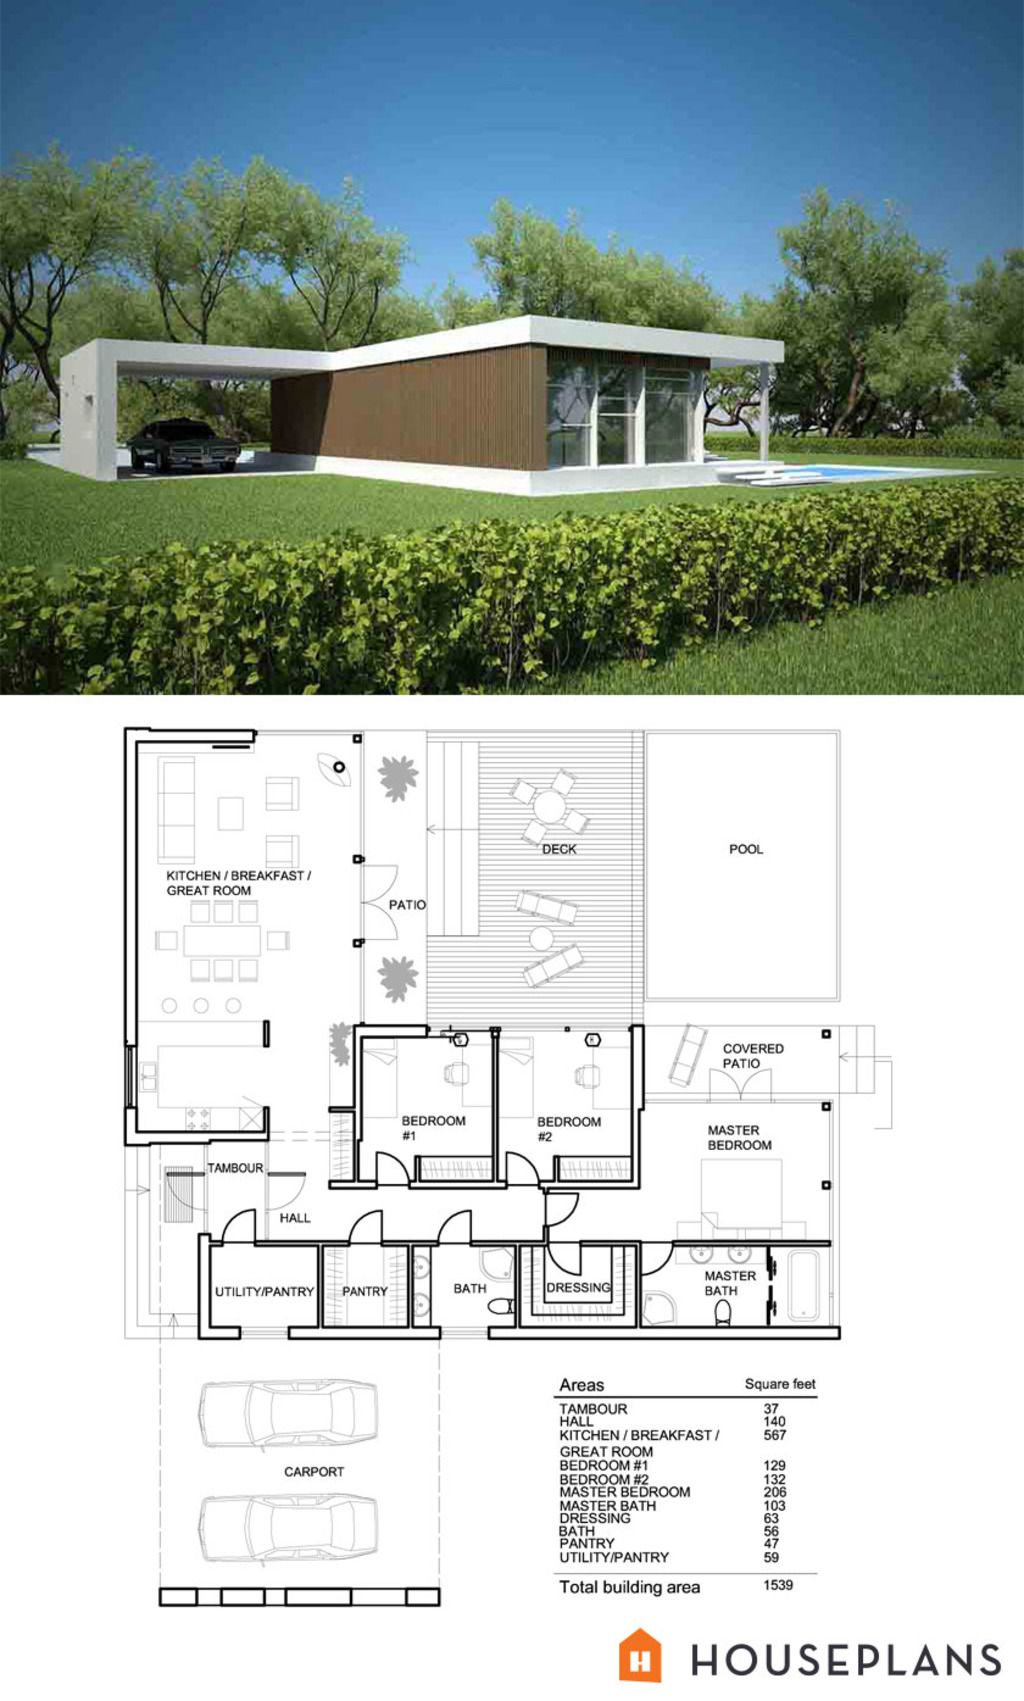 Plan houseplans home container pinterest house